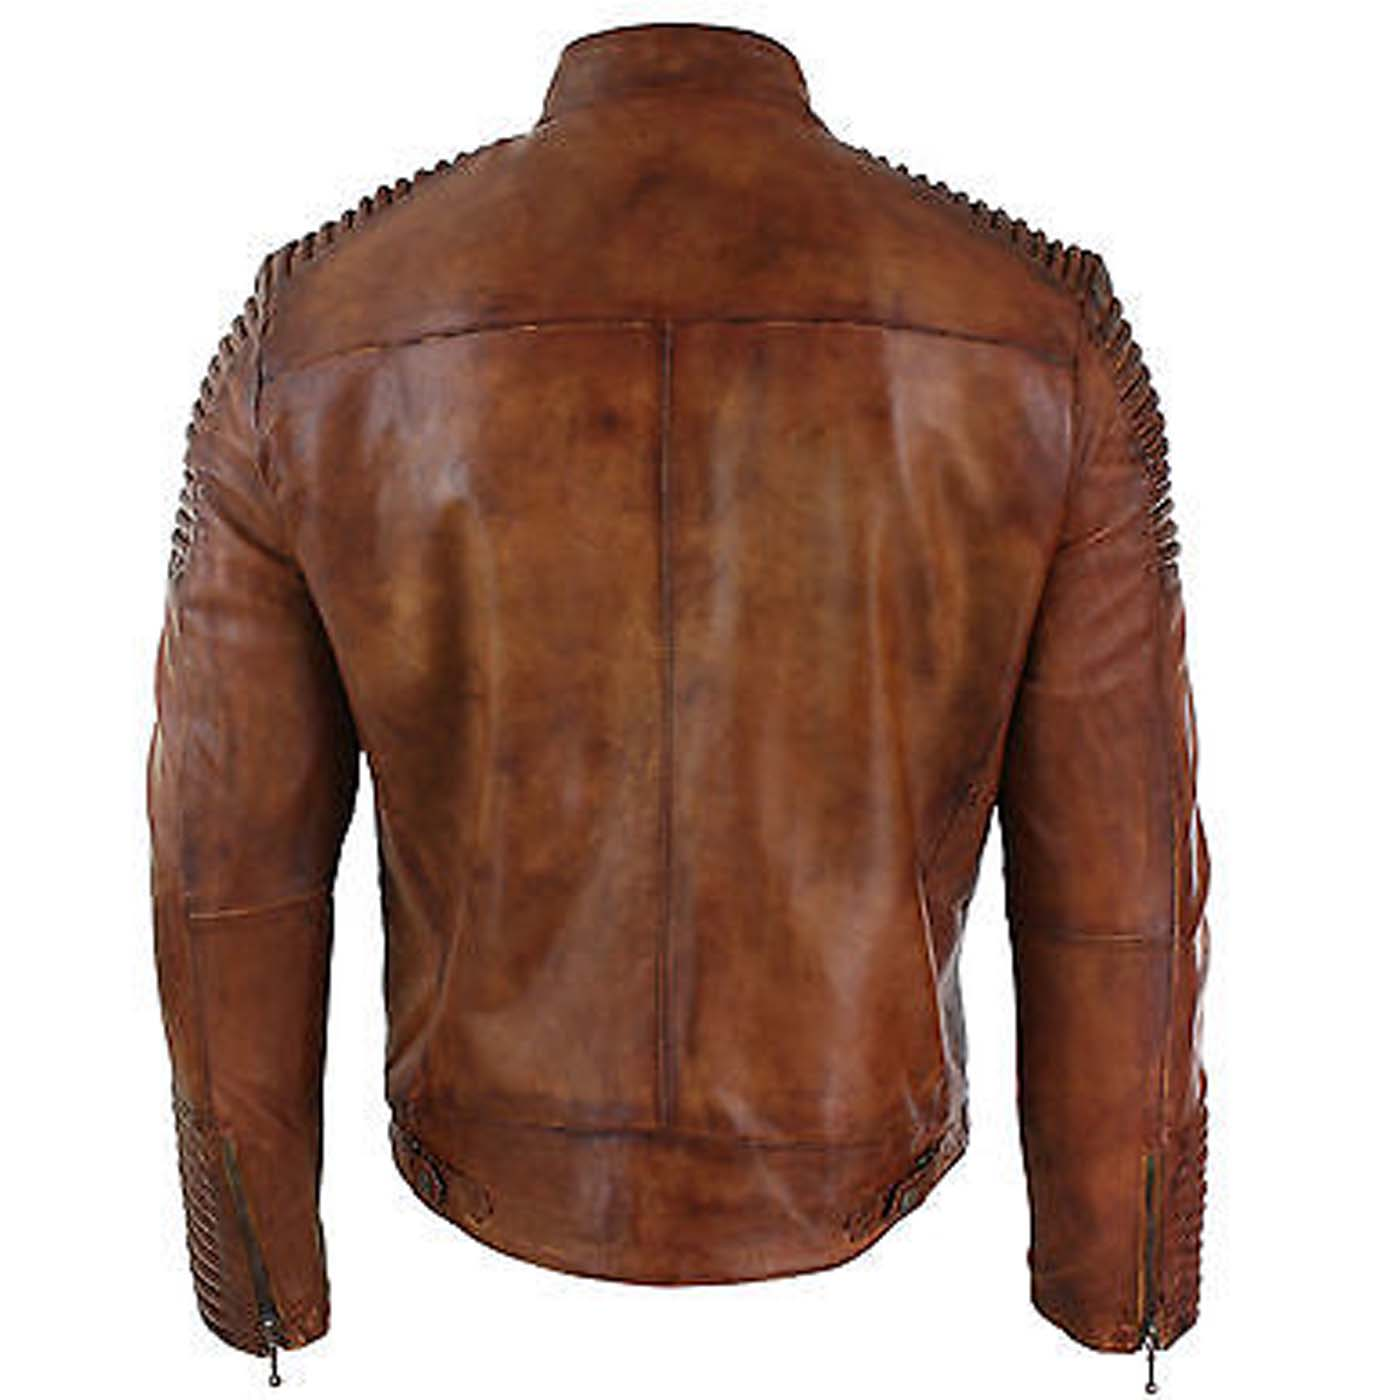 Mens Biker Vintage Cafe Racer Wax Distressed Brown Leather Jacket 2 copy